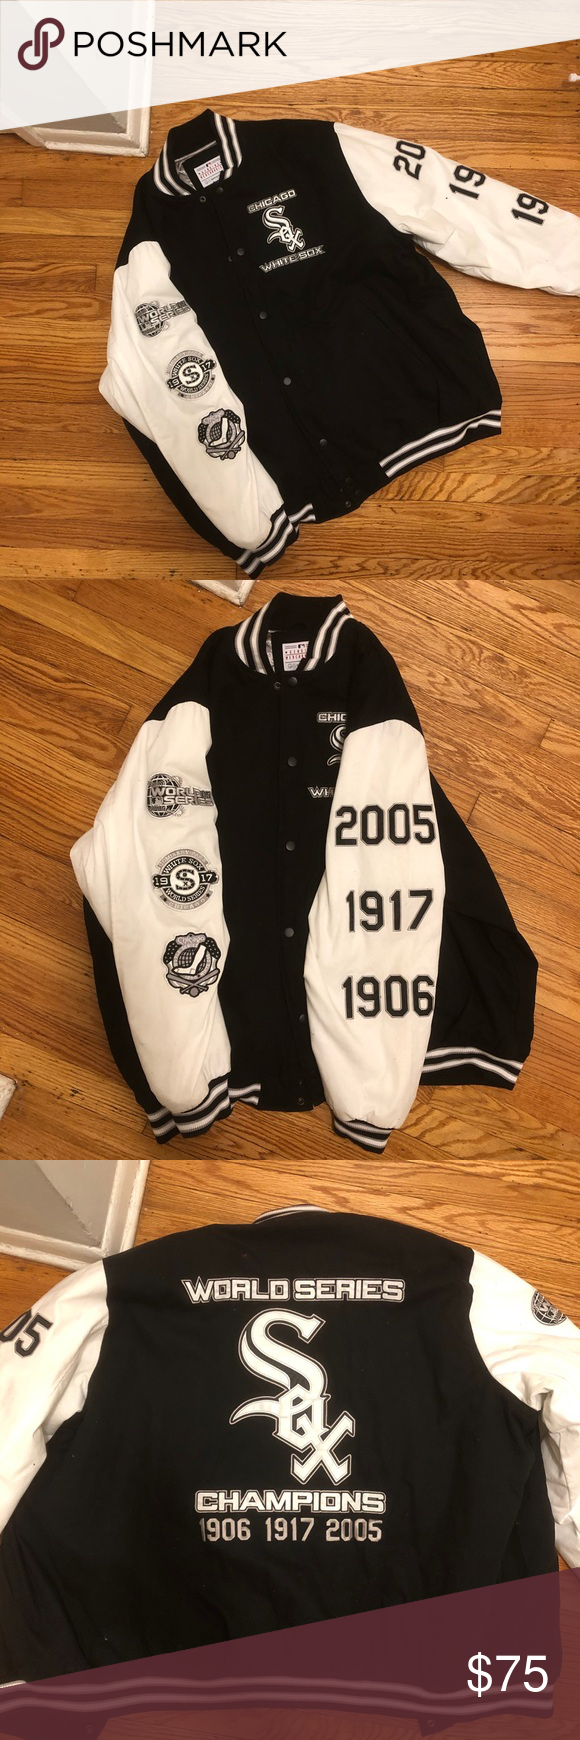 Official Chicago White Sox Bomber Jacket Jackets Bomber Jacket Chicago White Sox [ 1740 x 580 Pixel ]